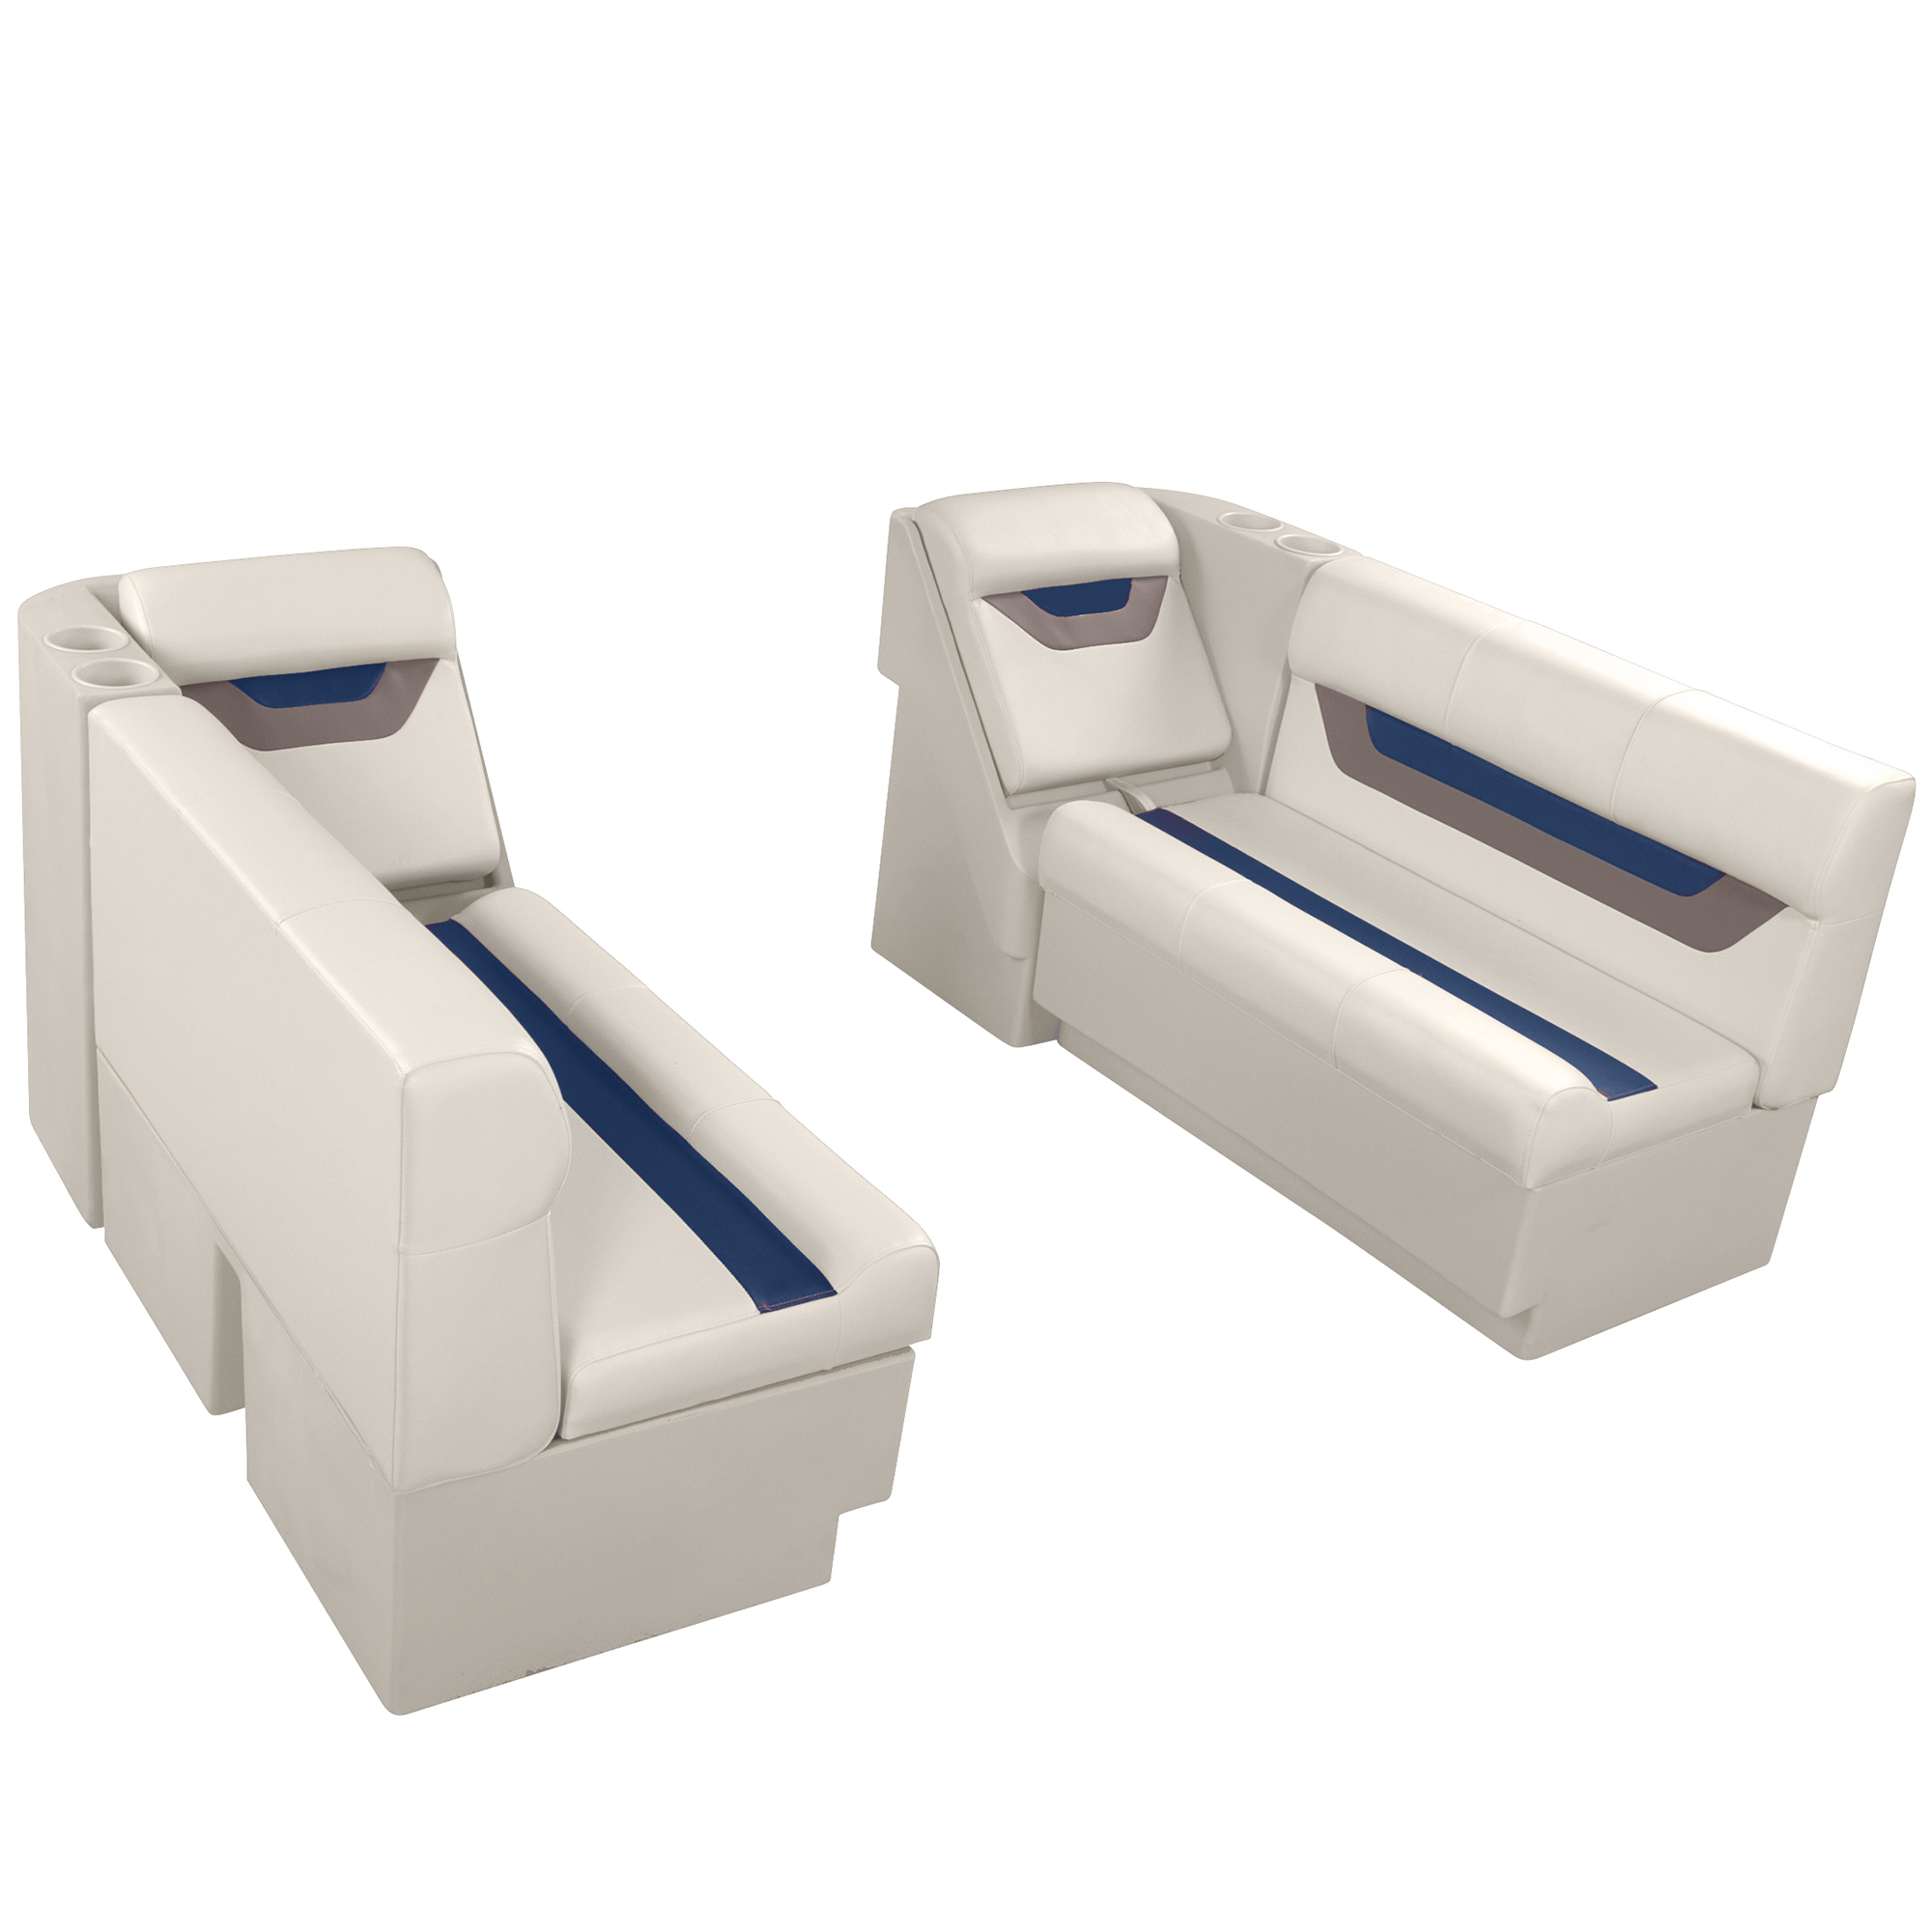 "Designer Pontoon Furniture - 54"" Front Lounge Package, Platinum/Midnight/Mocha"